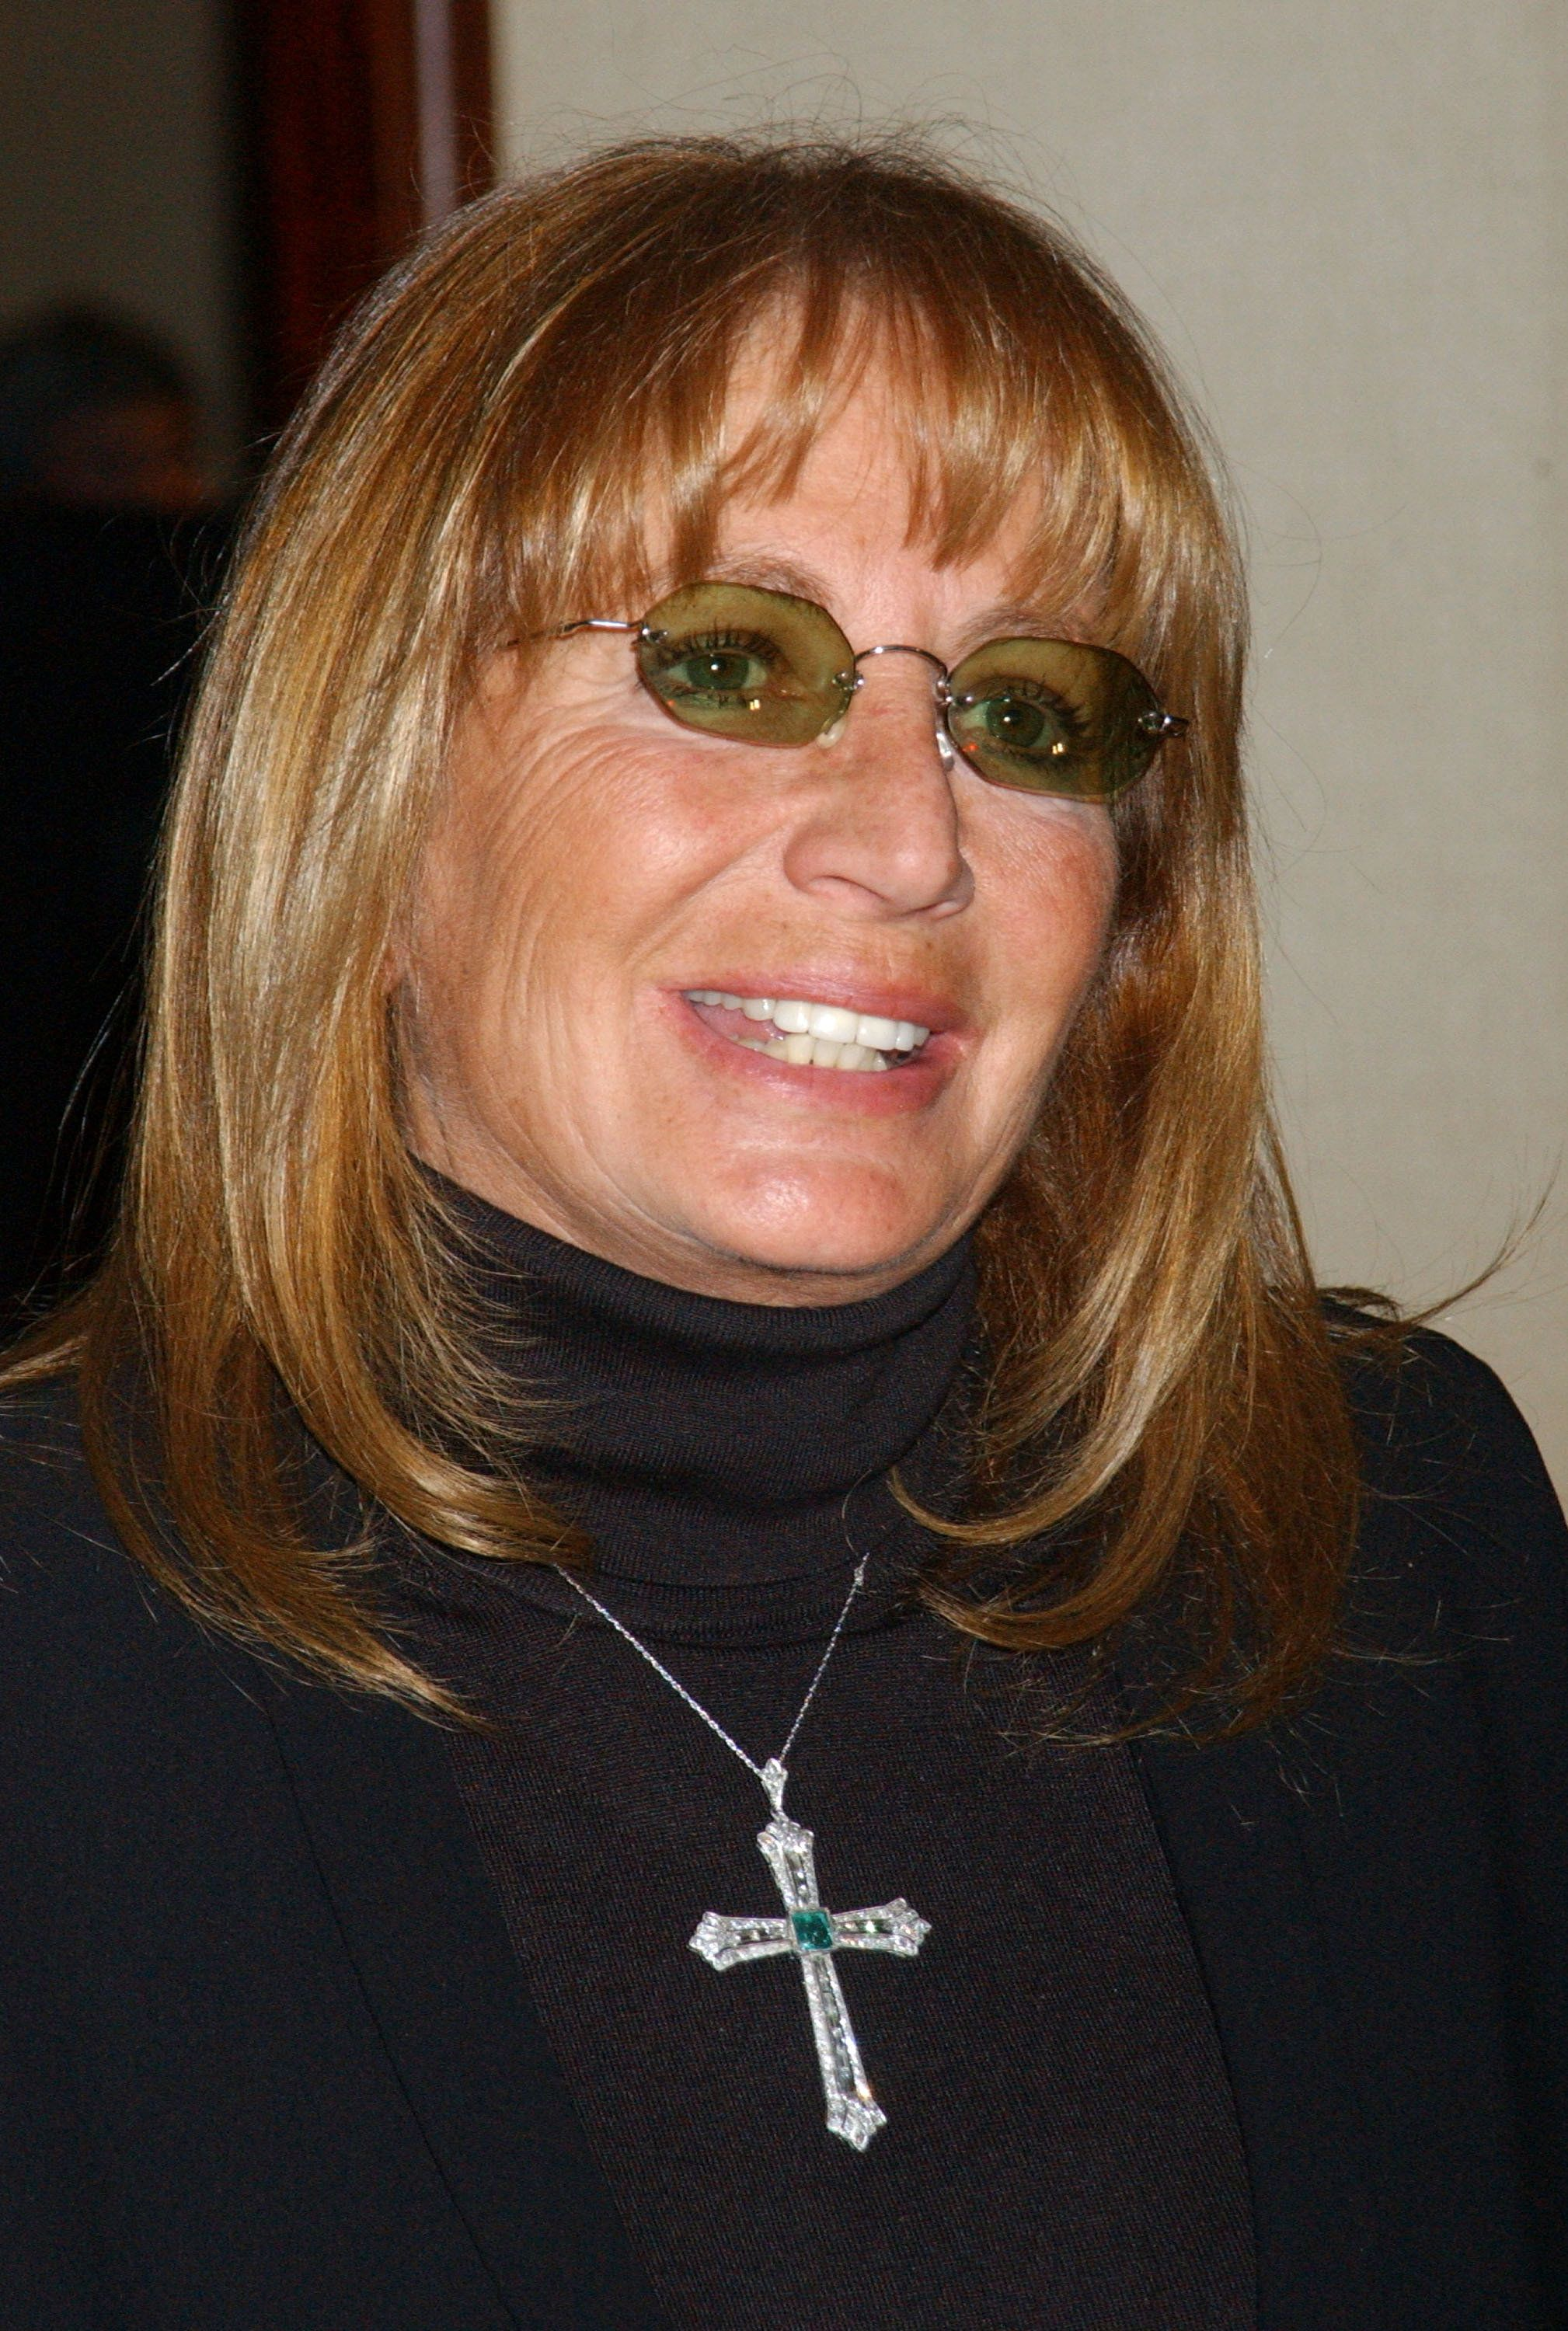 TRIBUTES: 'Laverne & Shirley' Star Penny Marshall Dies, Aged